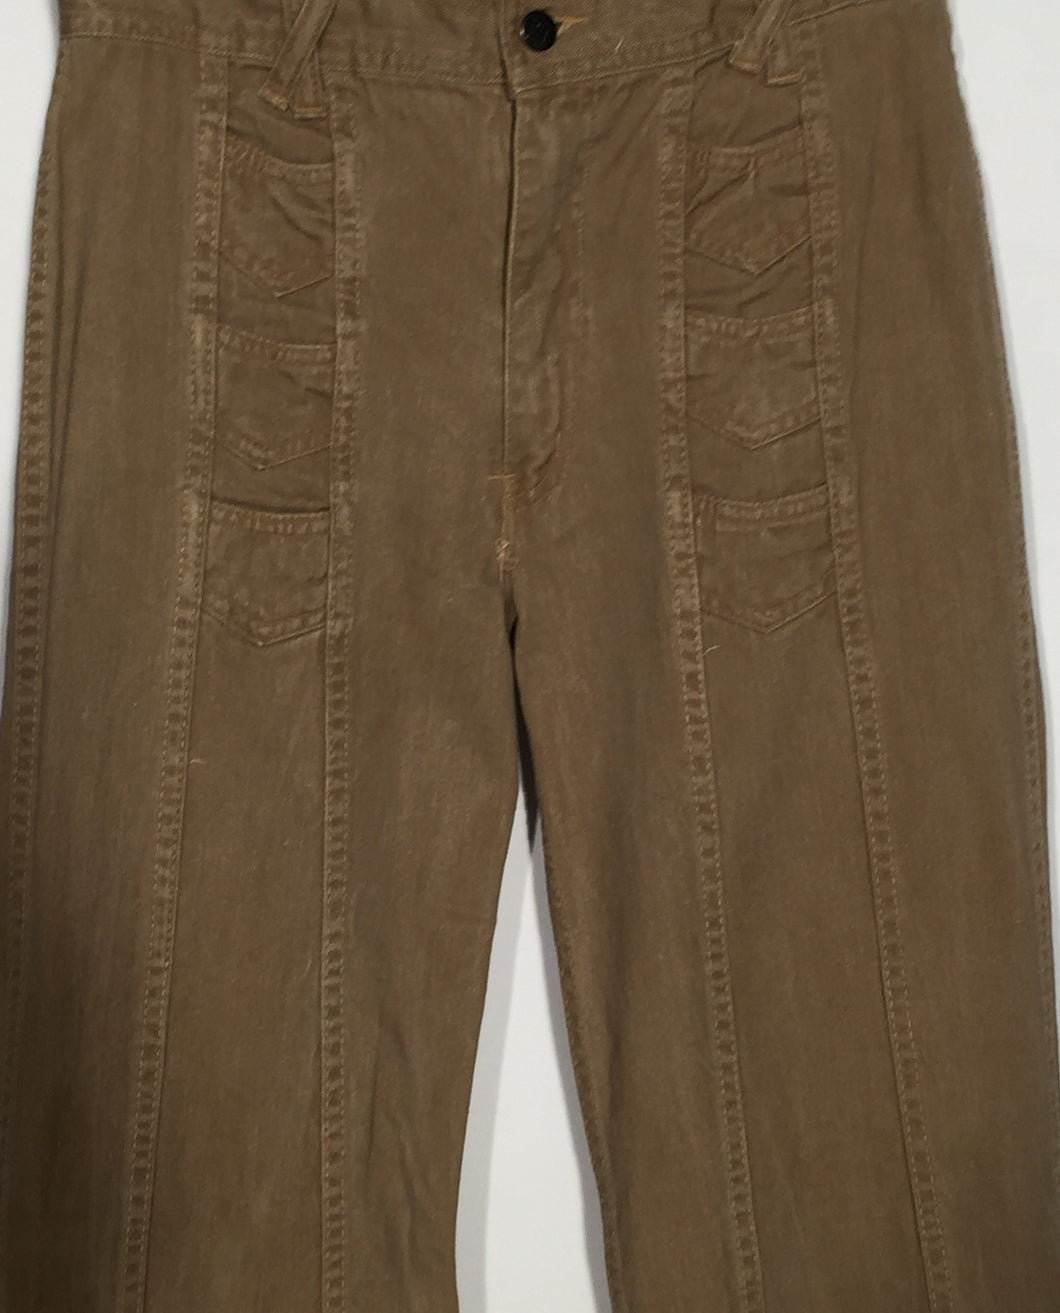 1970s Men's Tall Vintage Hands Off Light Brown Cotton Flare Pants 33